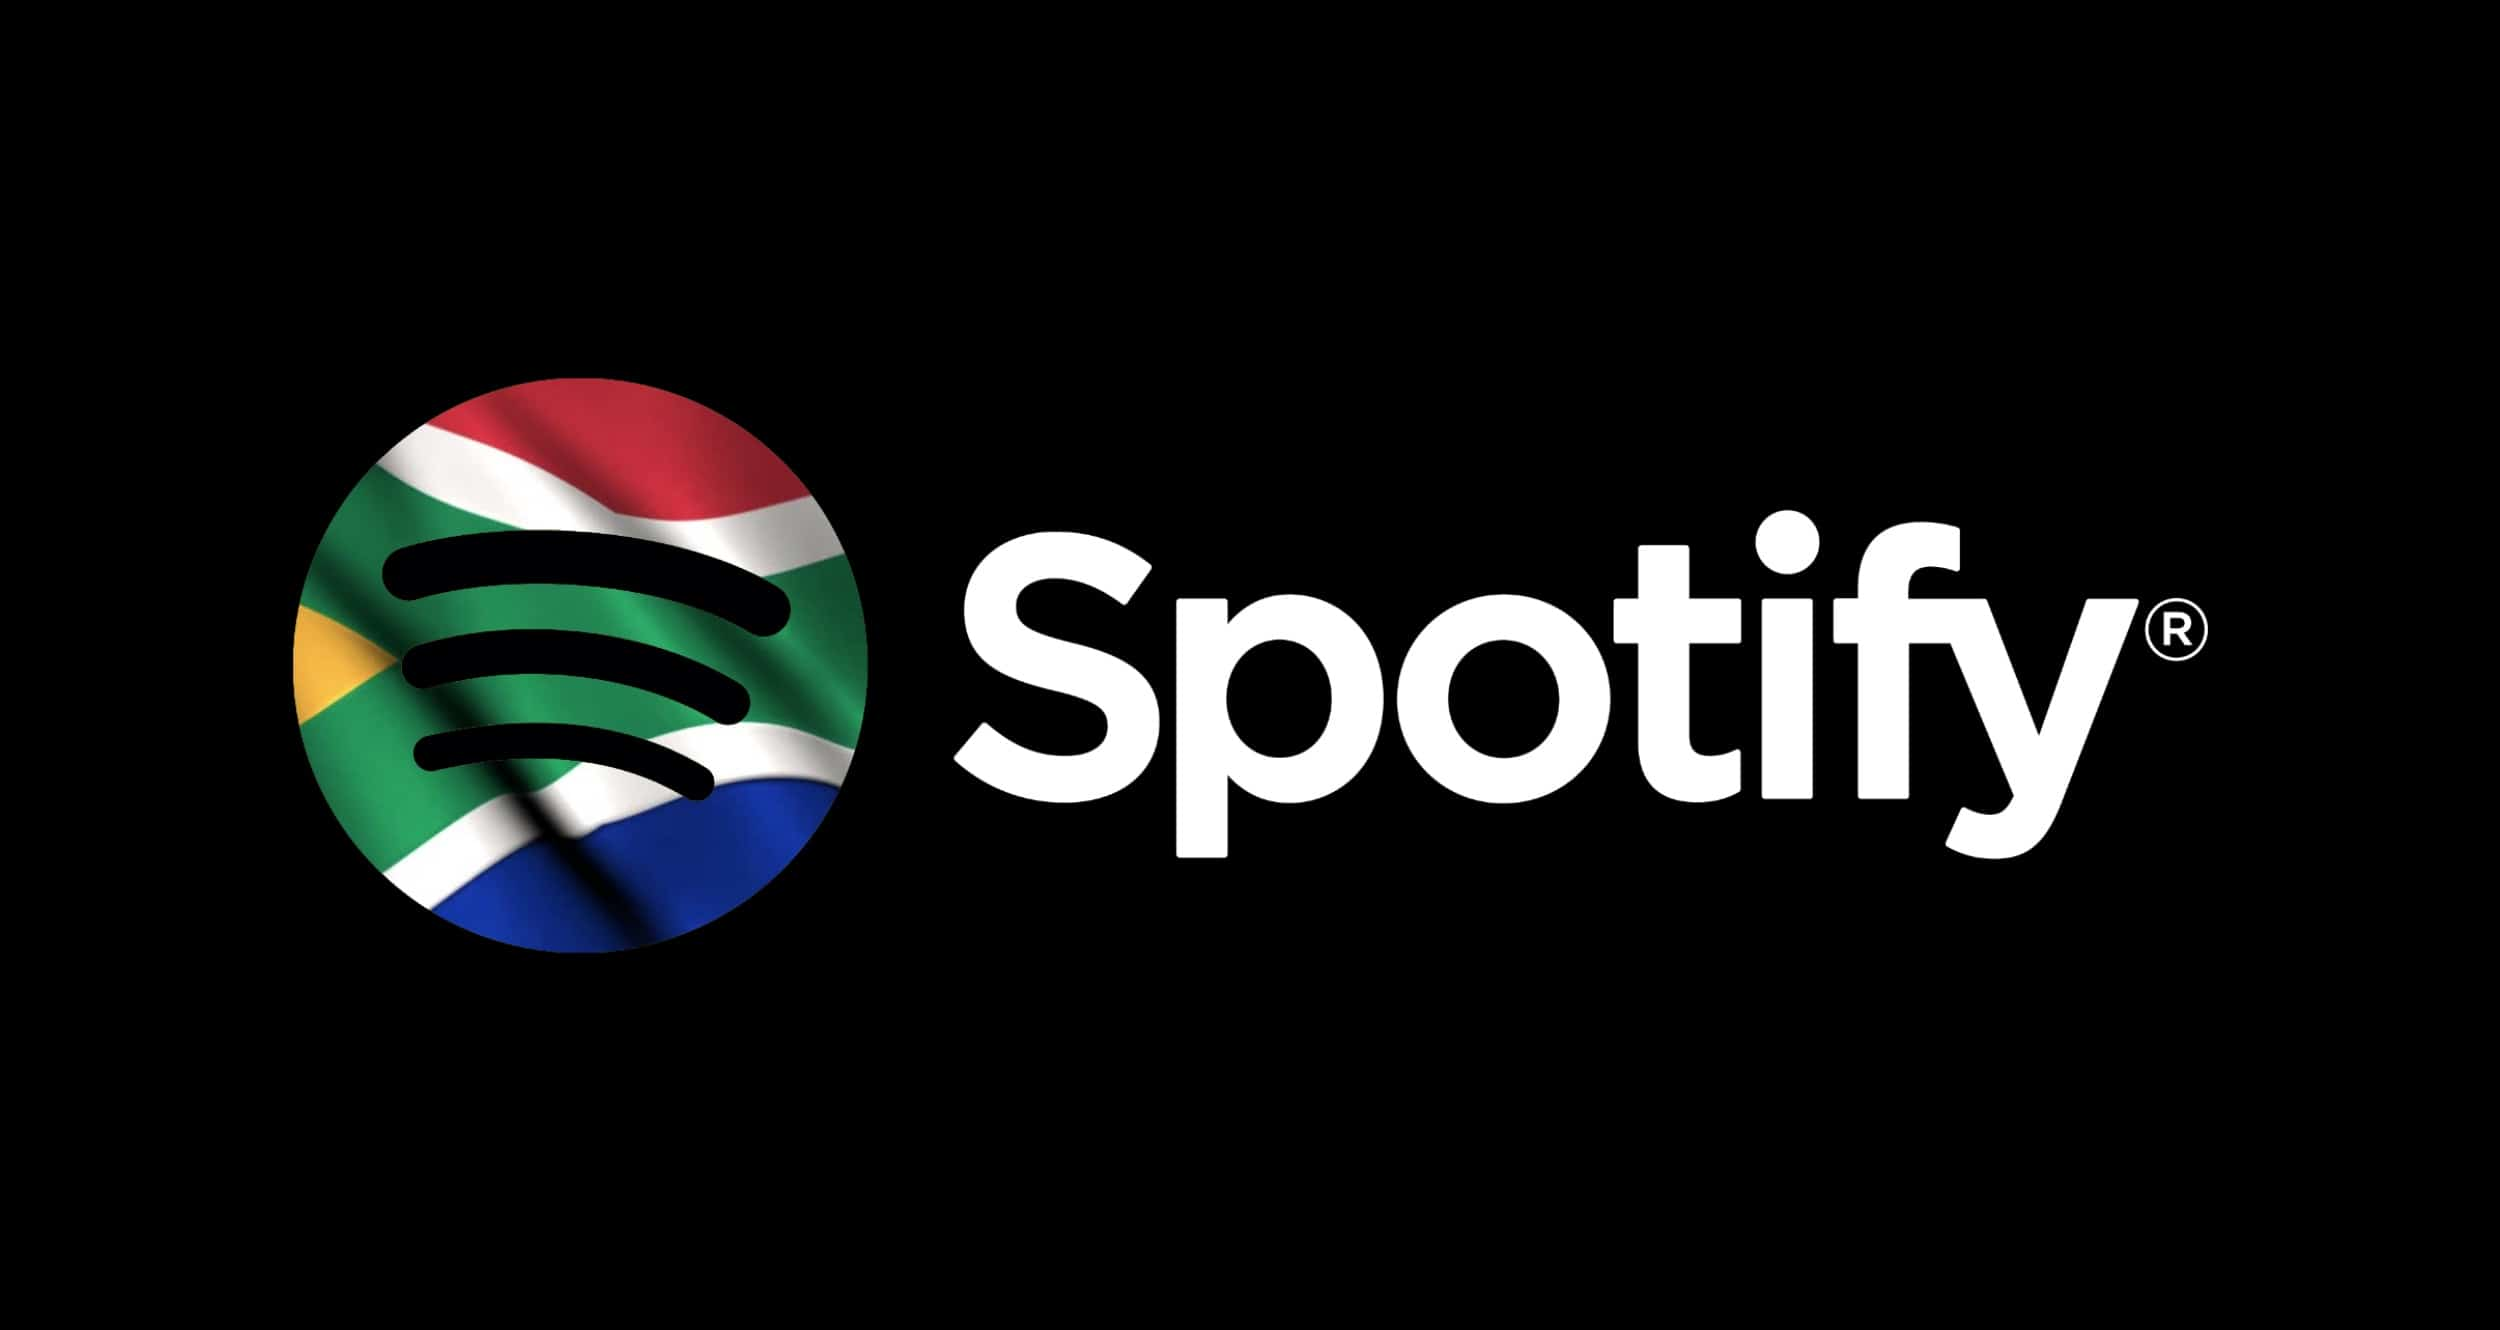 Spotify launches in Israel, offers month free trial